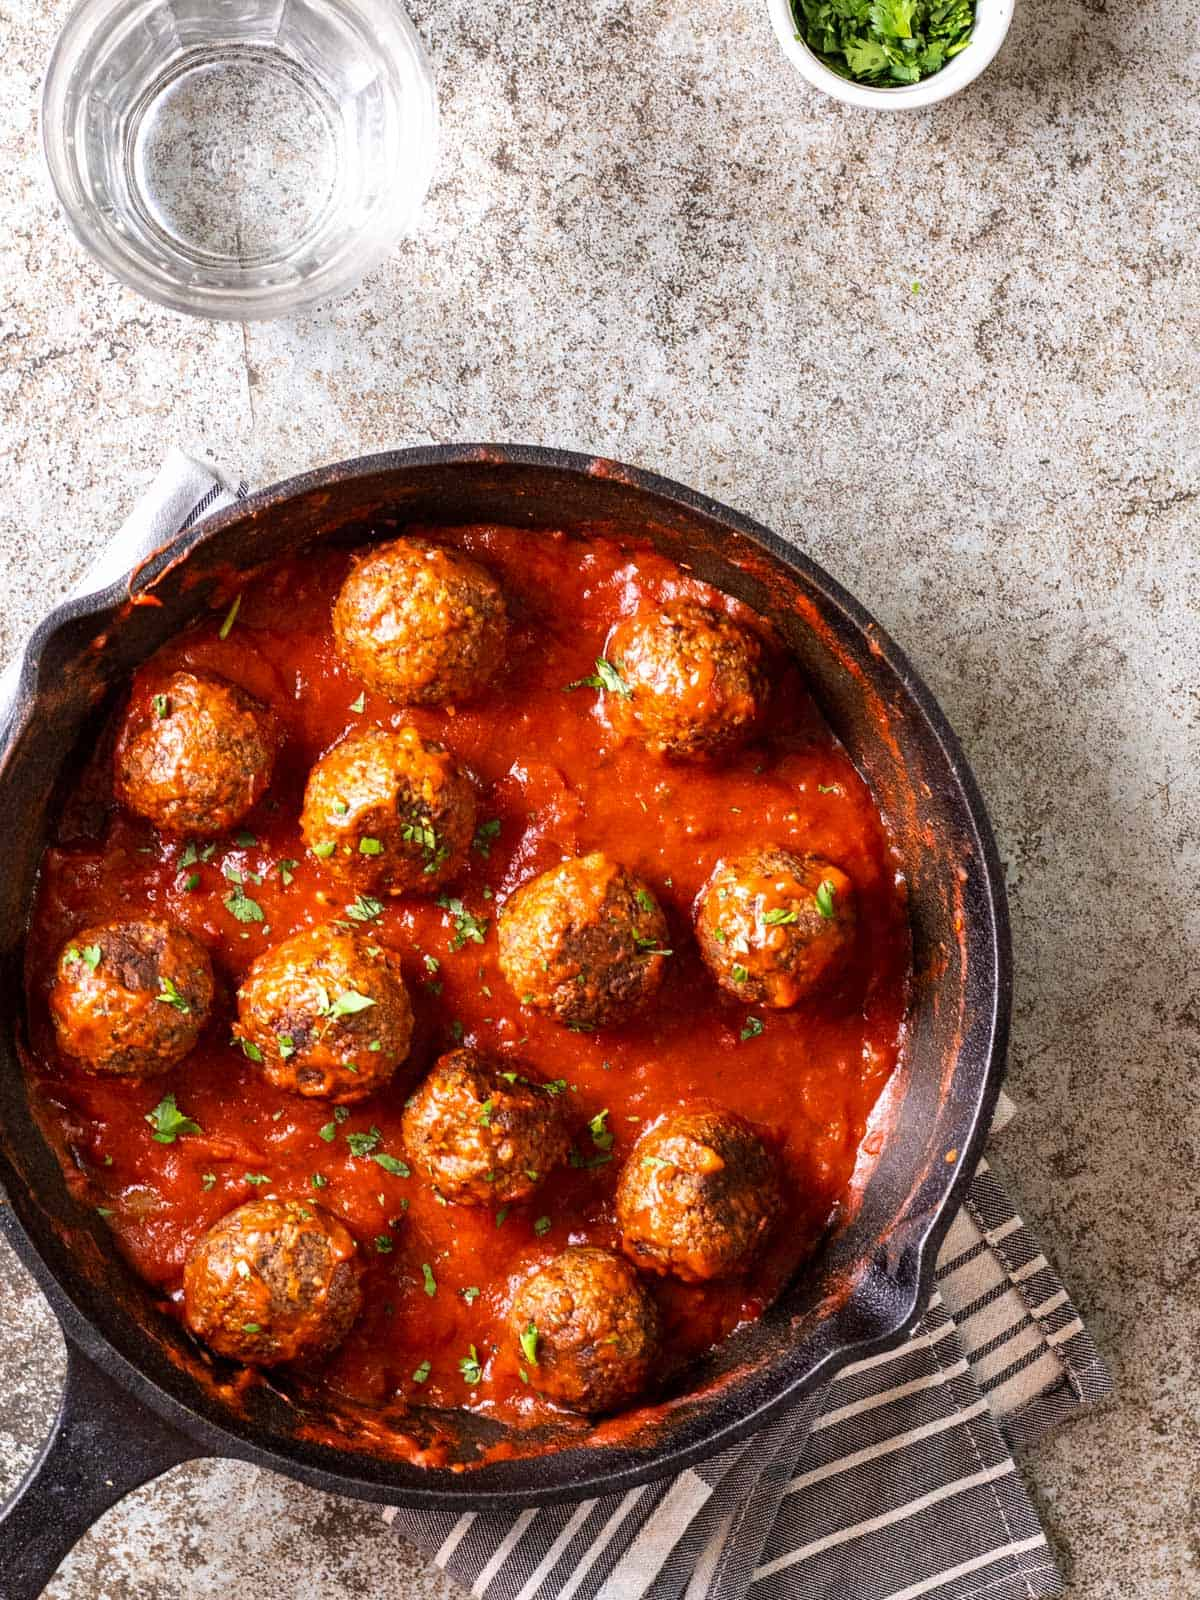 Tvp meatballs cooked with marinara sauce in a cast iron pan topped with chopped cilantro.